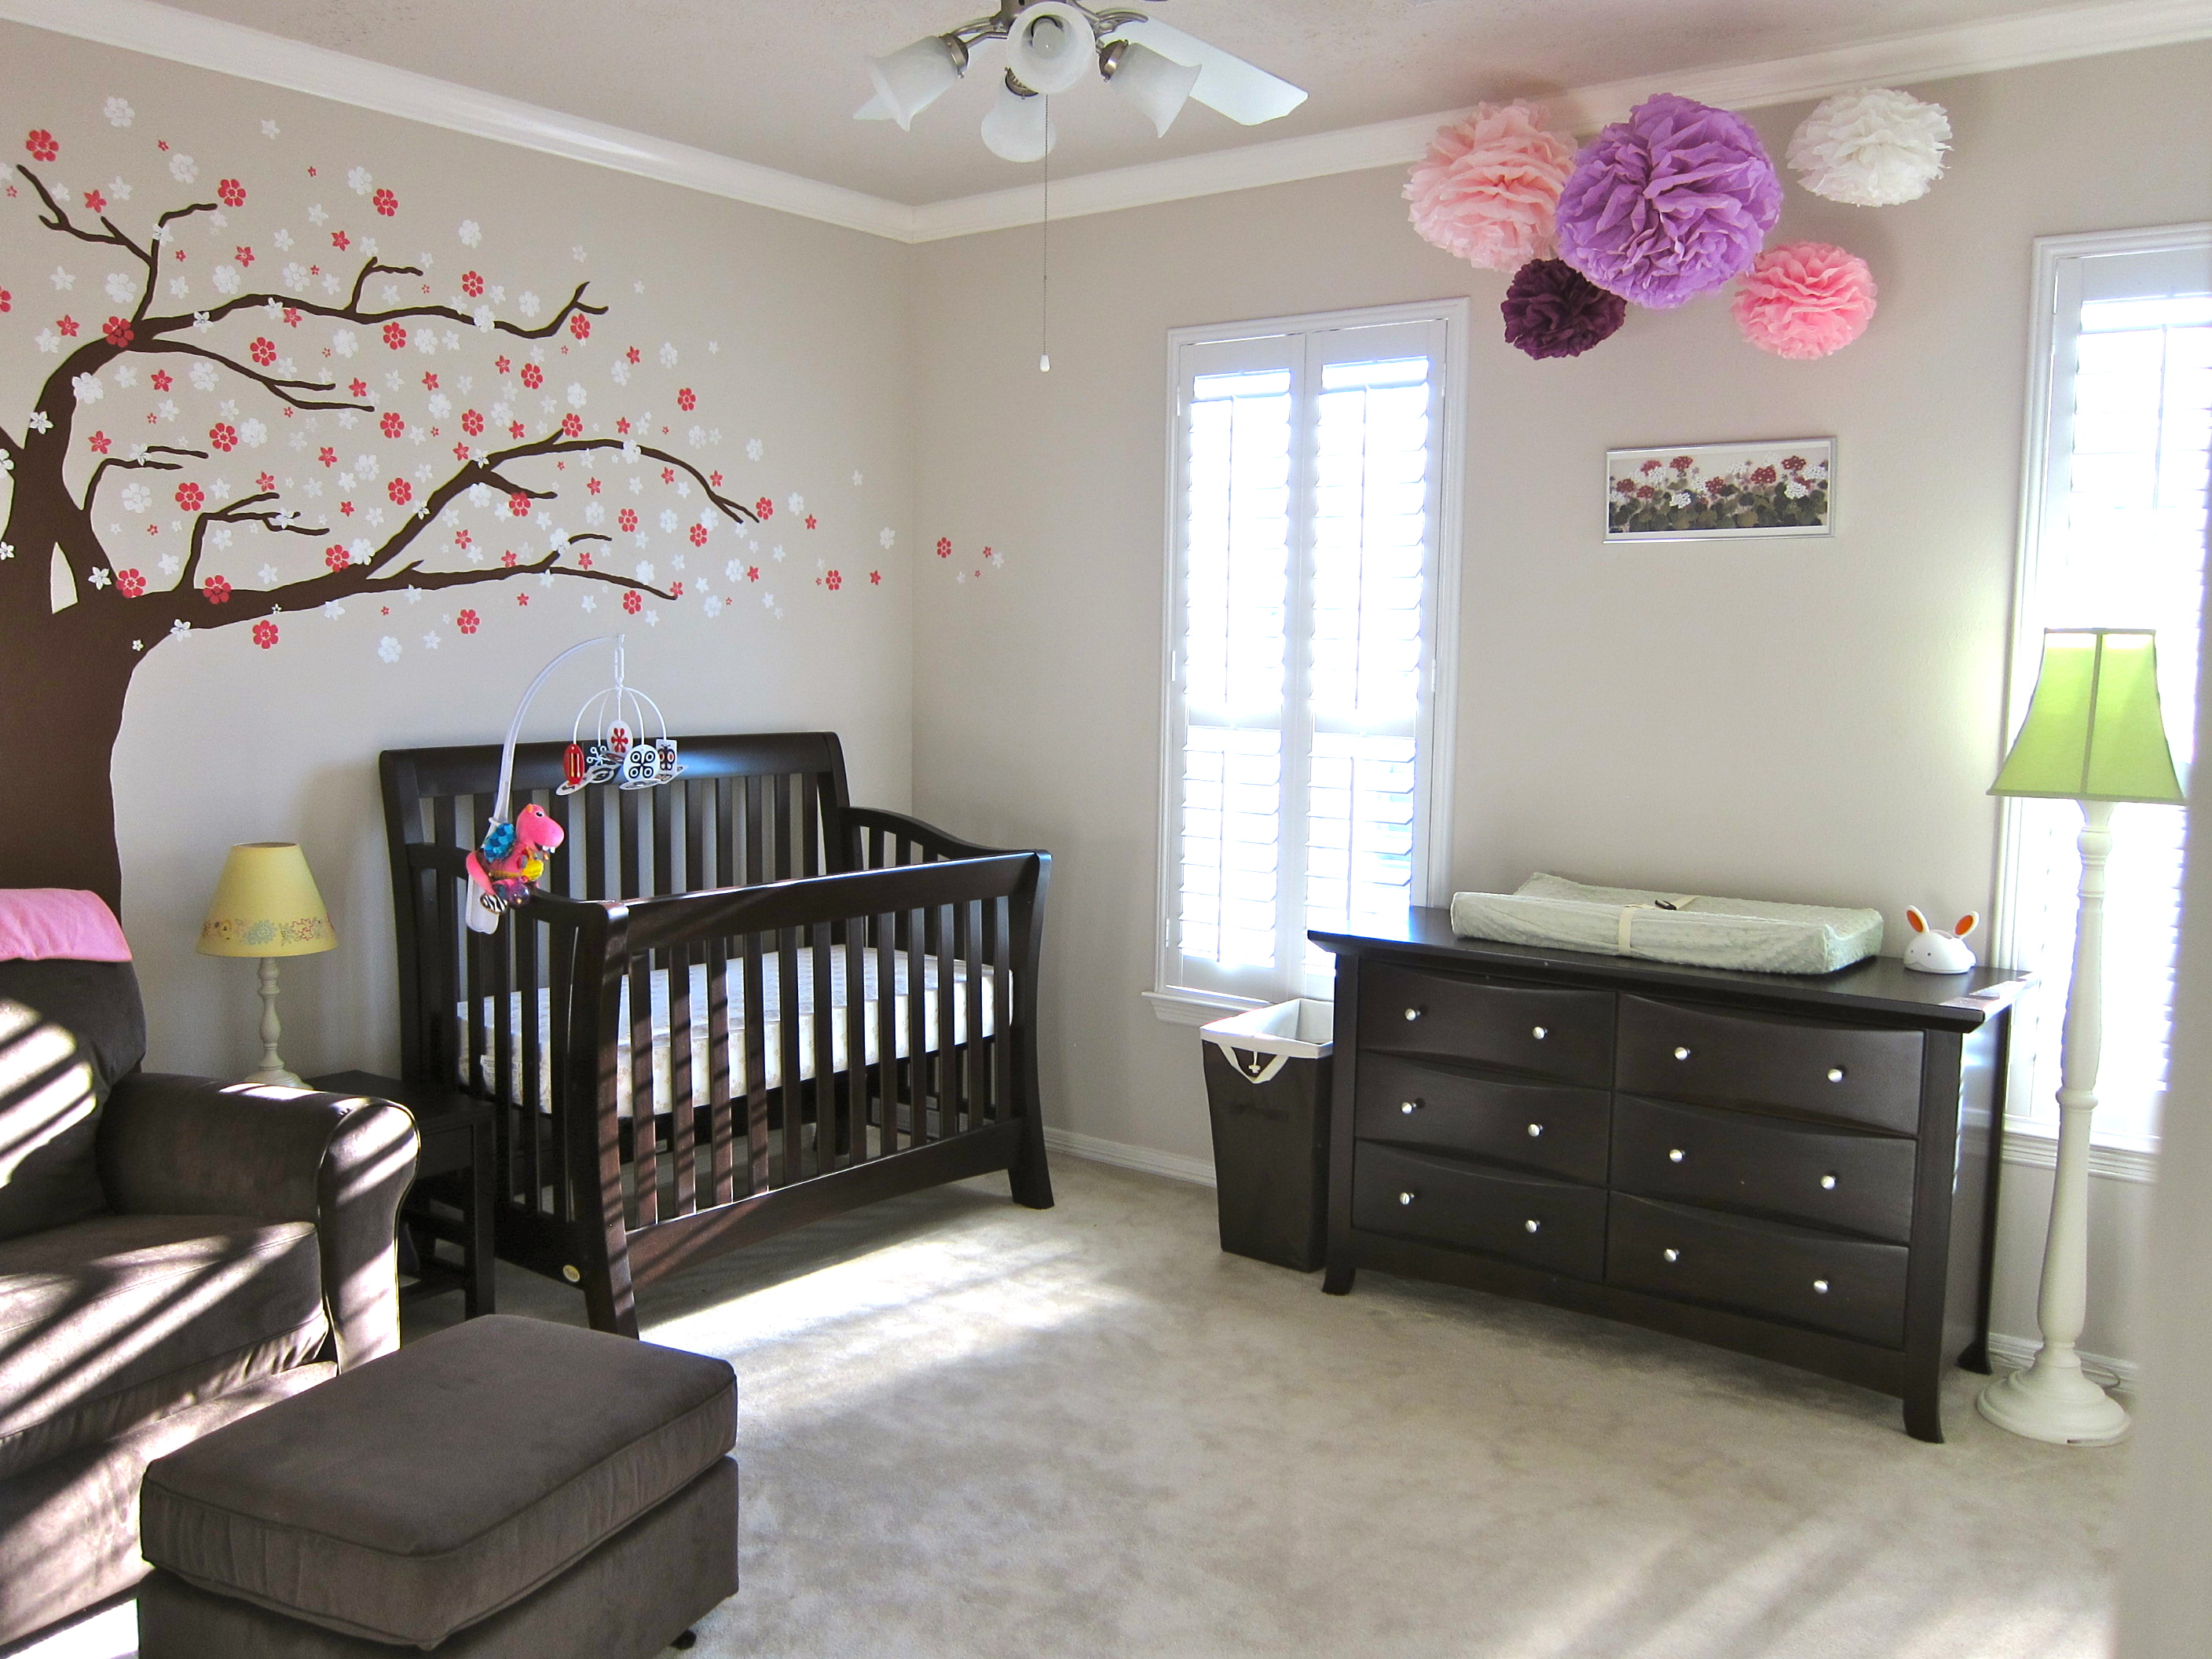 Baby girl 39 s simple neutral nursery project nursery - Baby girl bedroom ideas ...